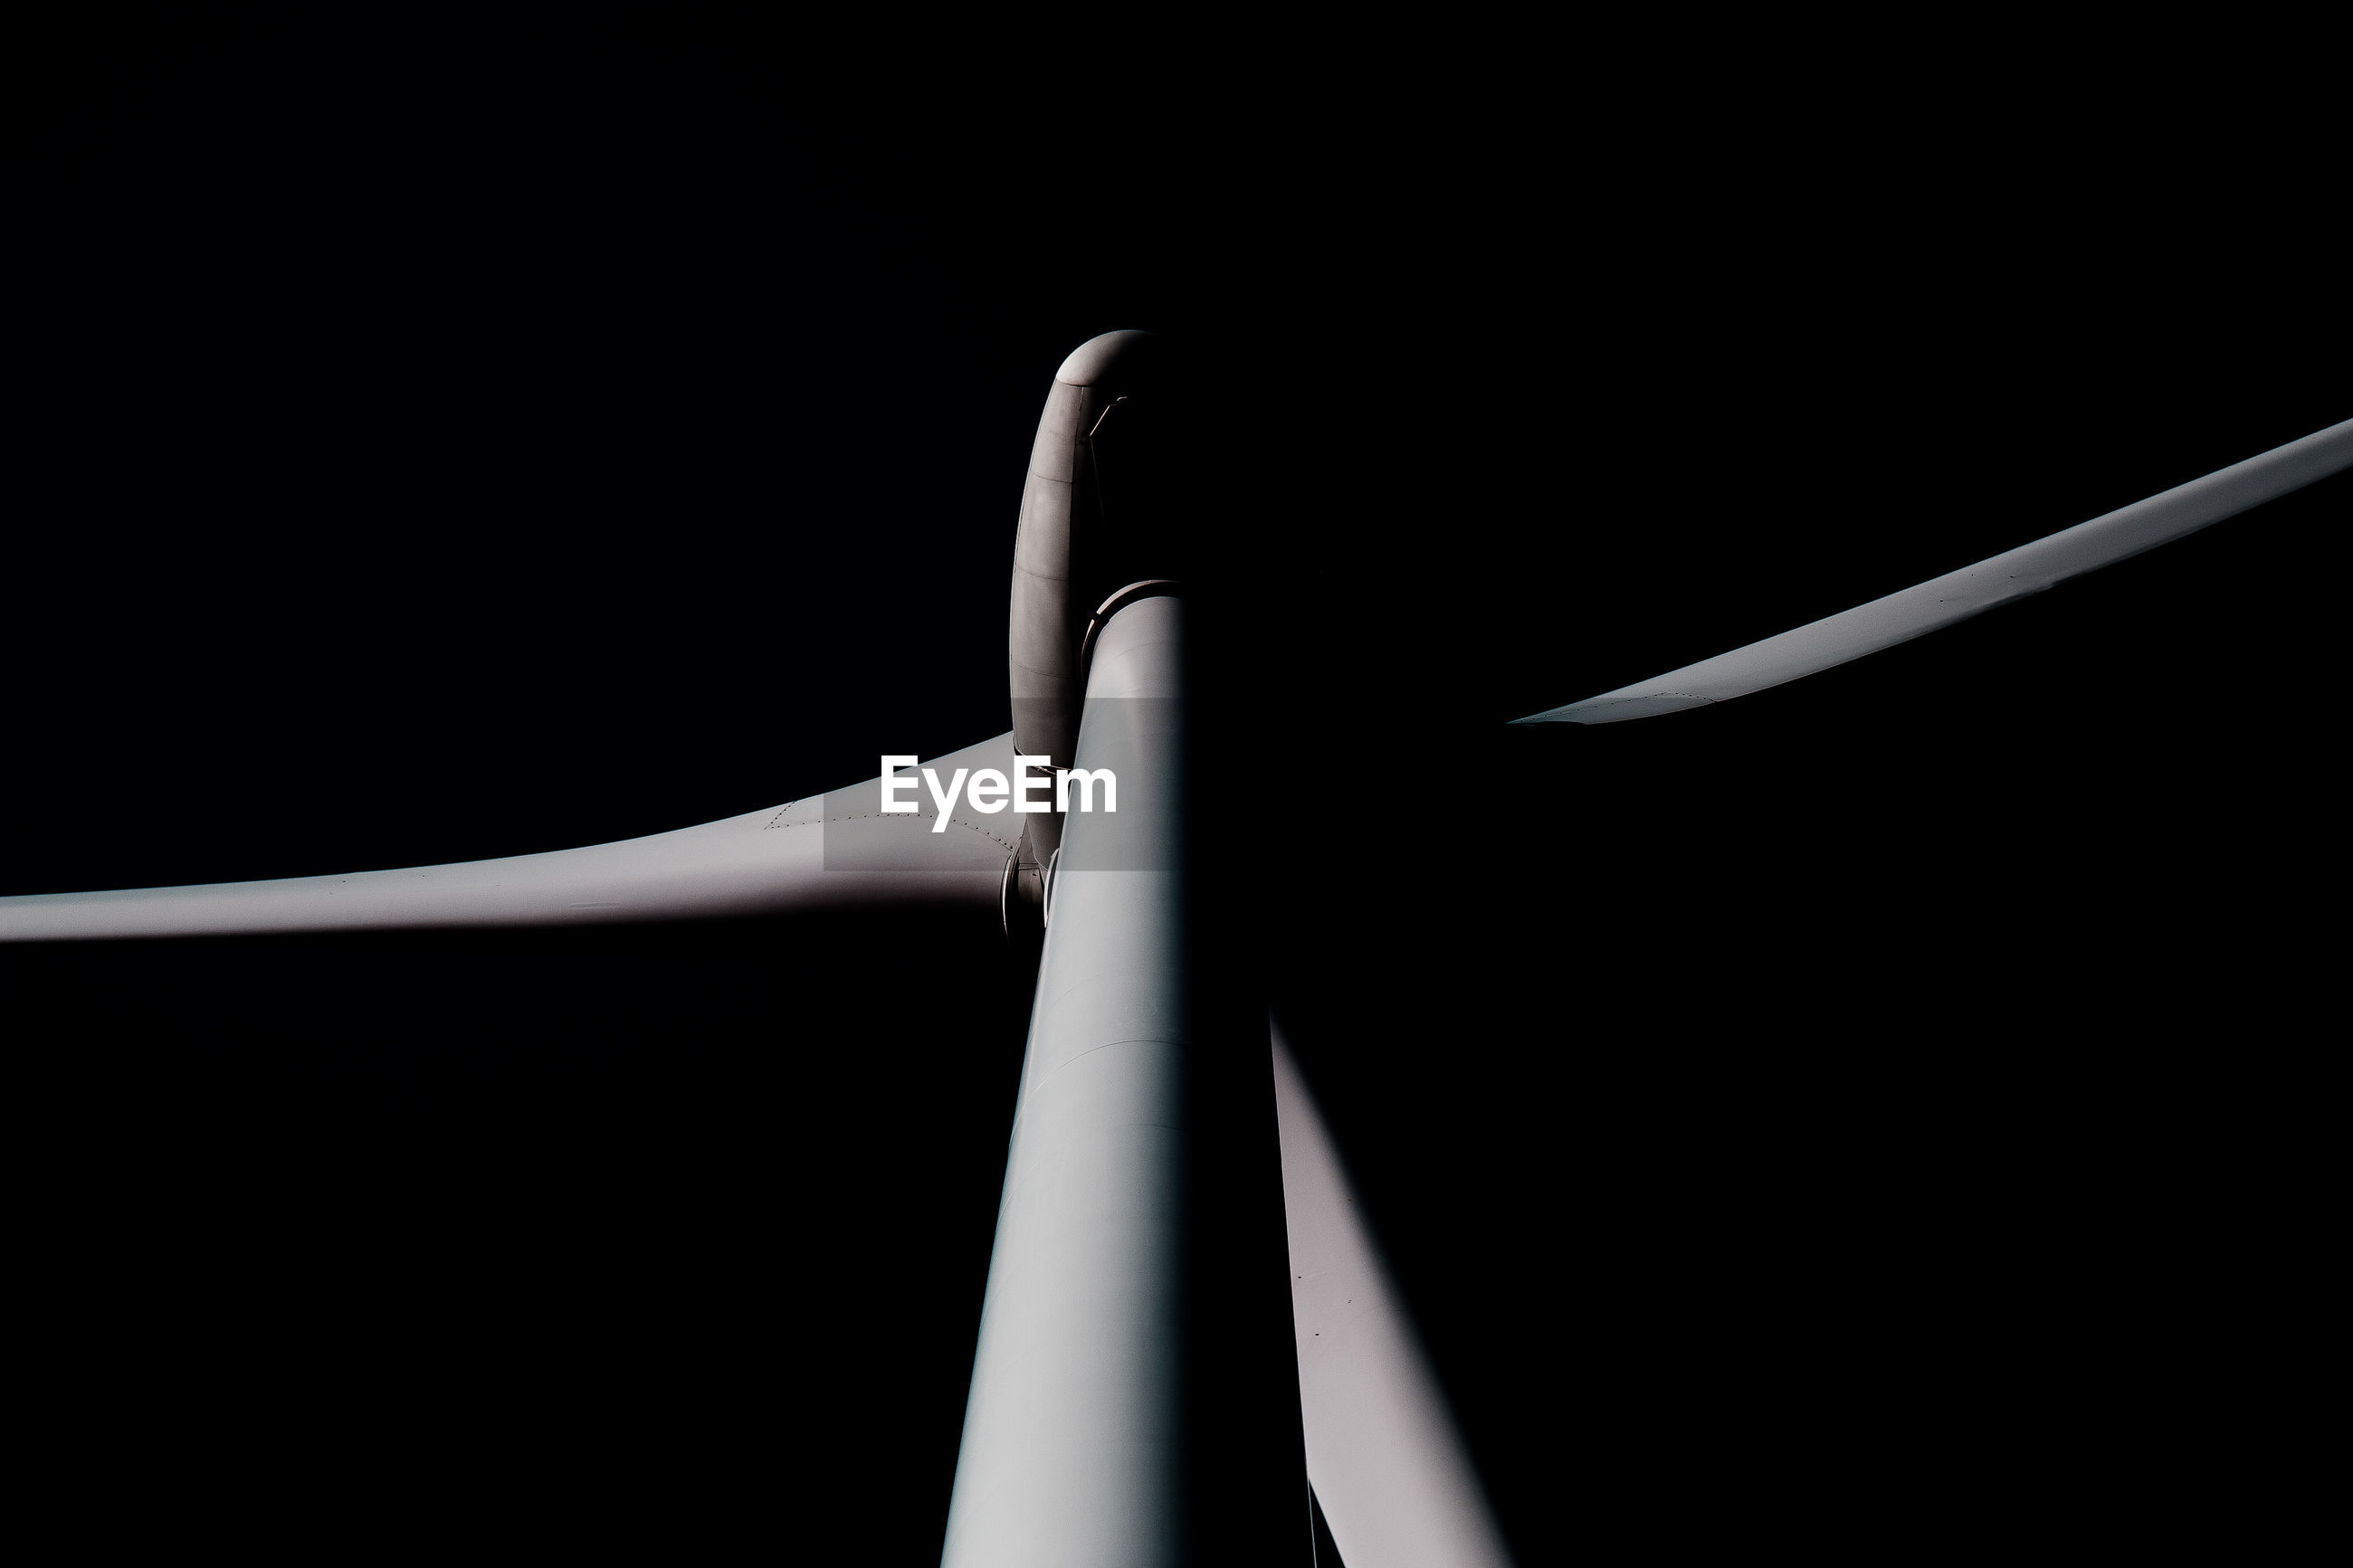 Low angle view of windmill against black background